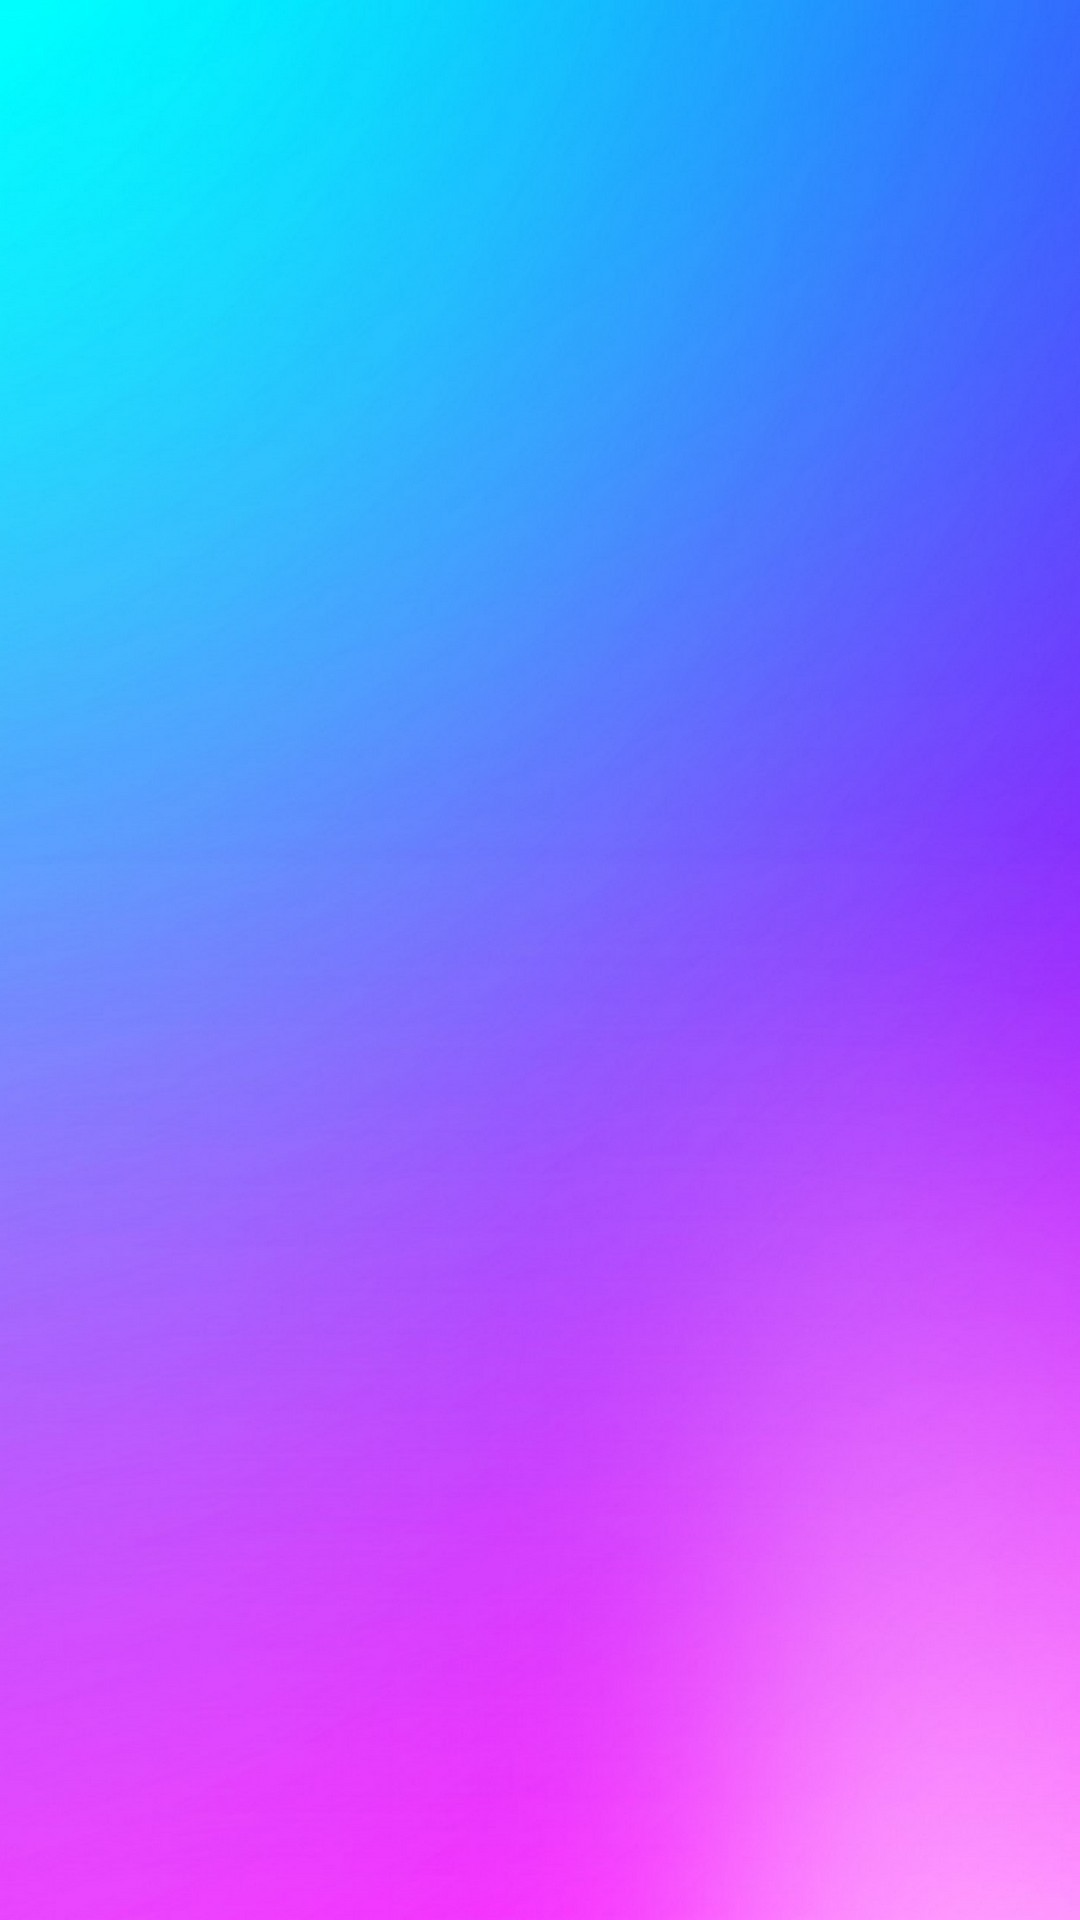 Gradient Iphone Wallpaper Home Screen With High-resolution - Gradient Wallpaper Iphone - HD Wallpaper